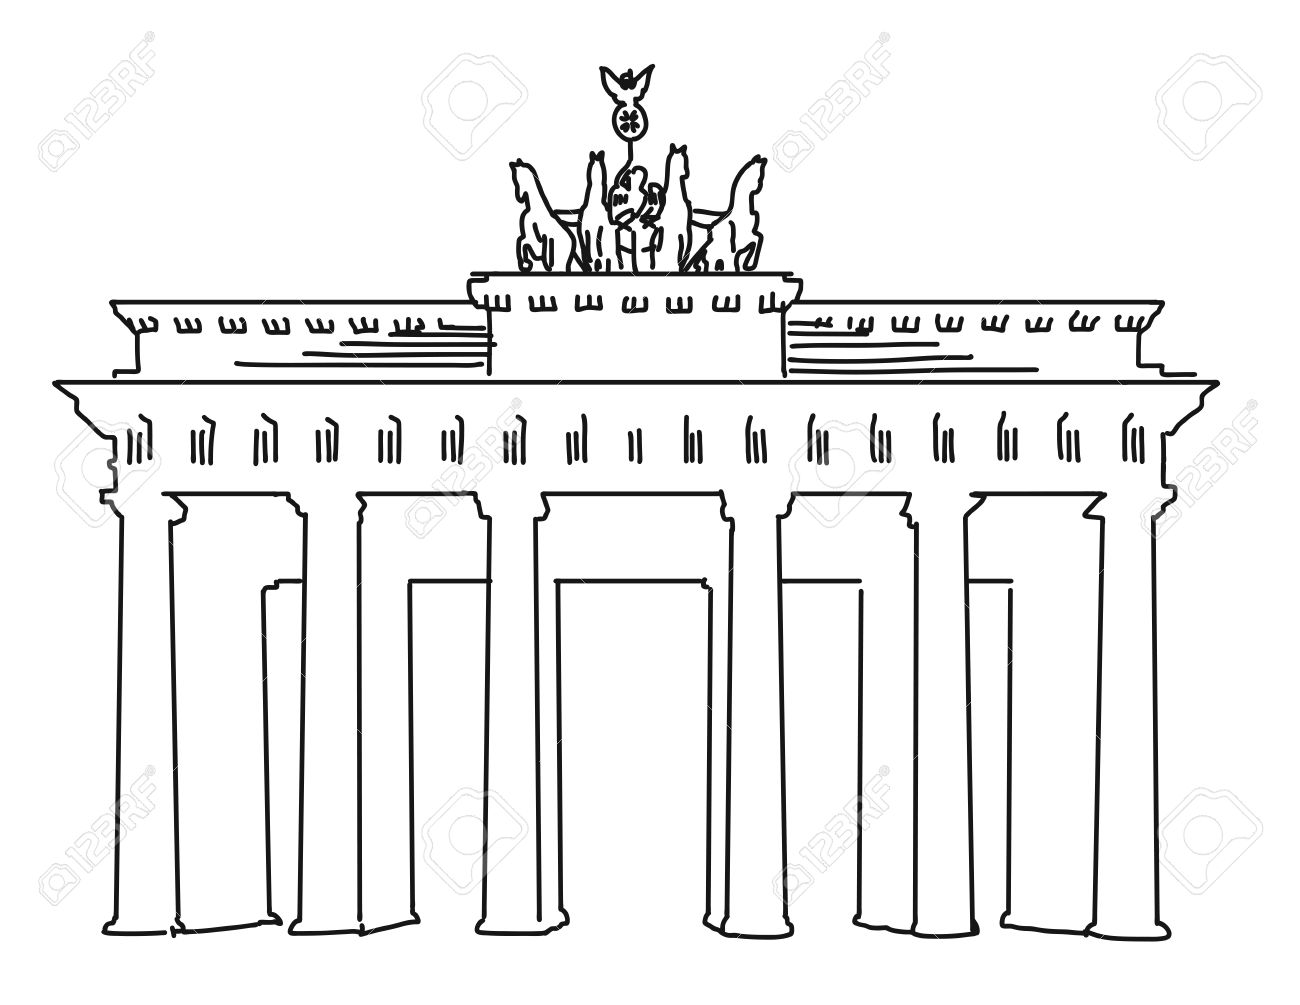 Brandenburger Gate Berlin Vector Outline Artwork Separated Royalty Free Cliparts Vectors And Stock Illustration Image 55803394